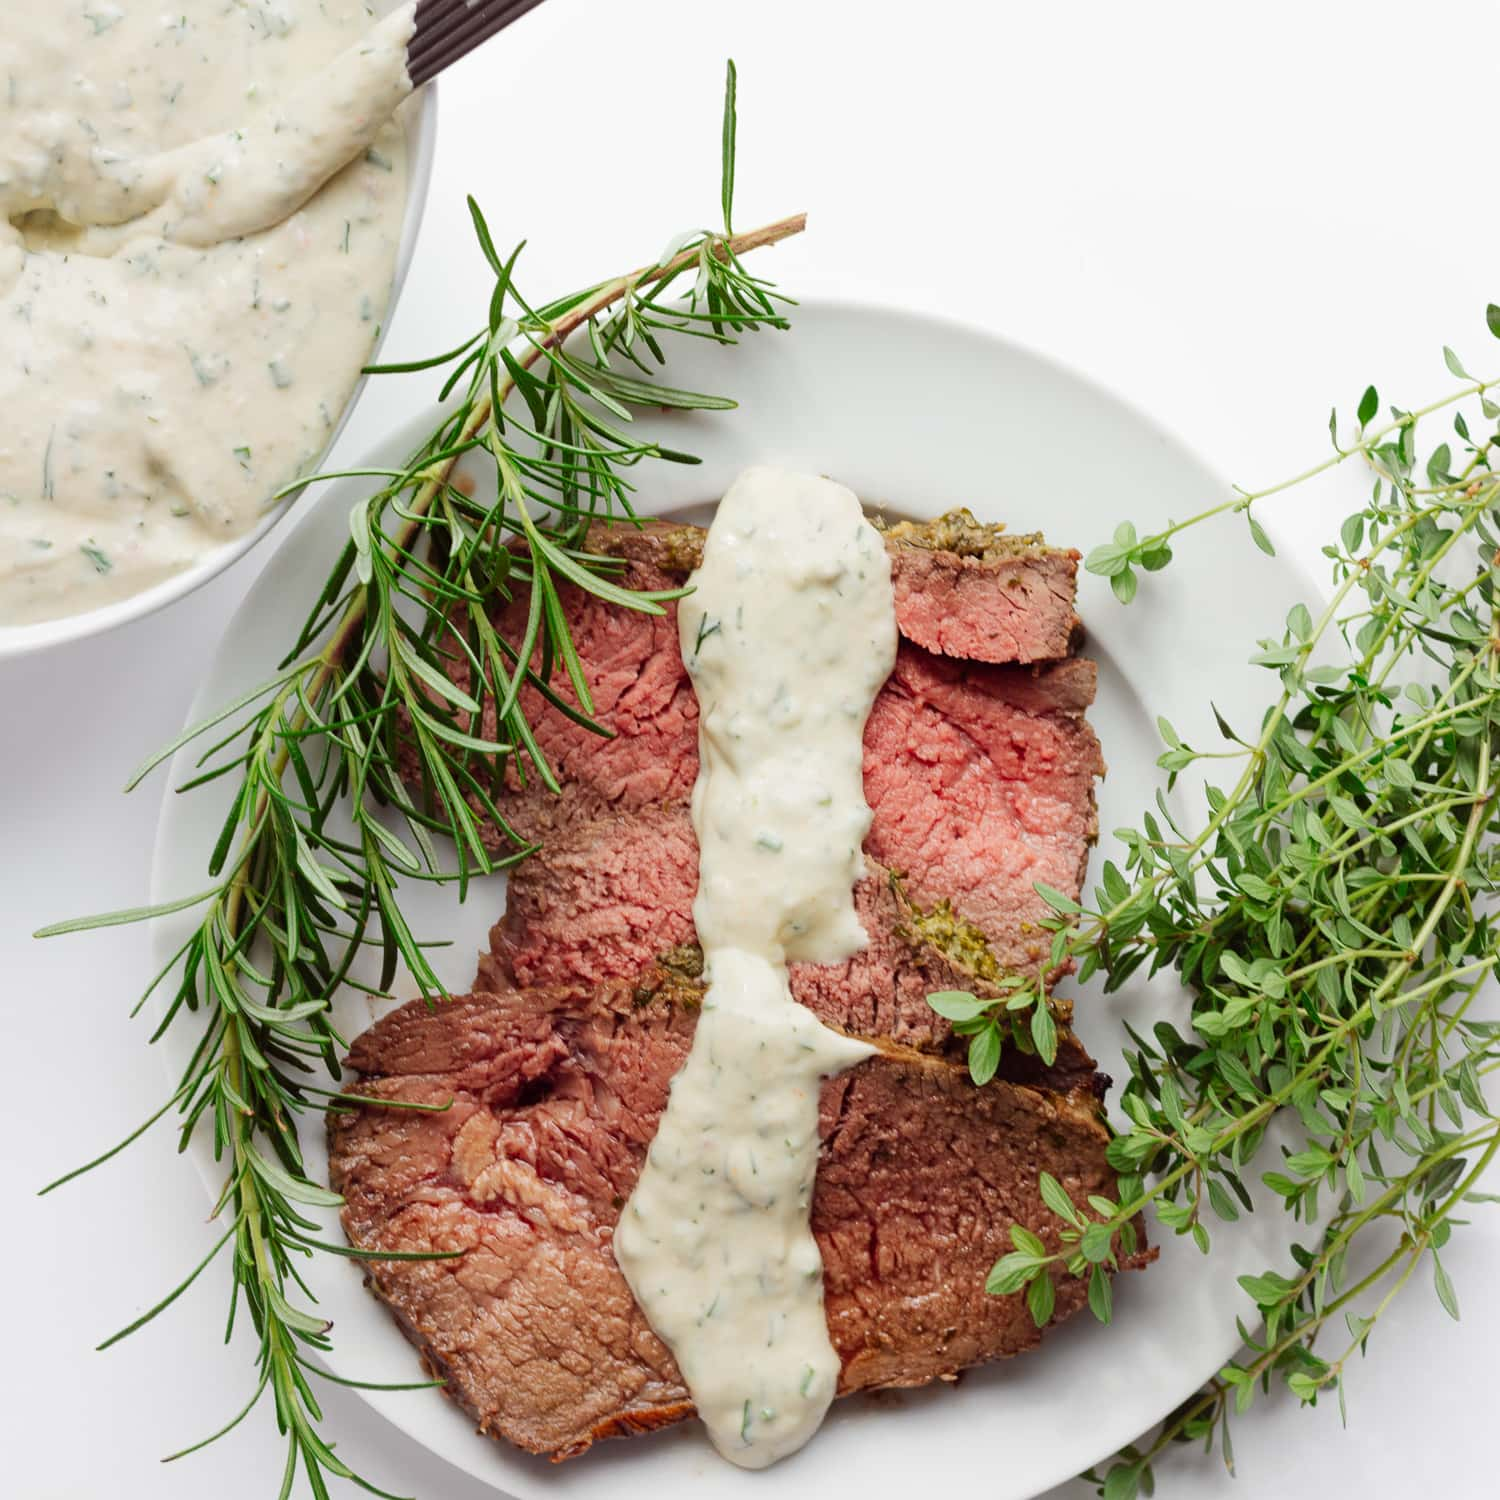 Slices of roast beef on a white plate with a drizzle of creamy herb sauce down the middle.  There is also a bowl of the same sauce in the corner and a sprig of rosemary and thyme on each side of the plate.